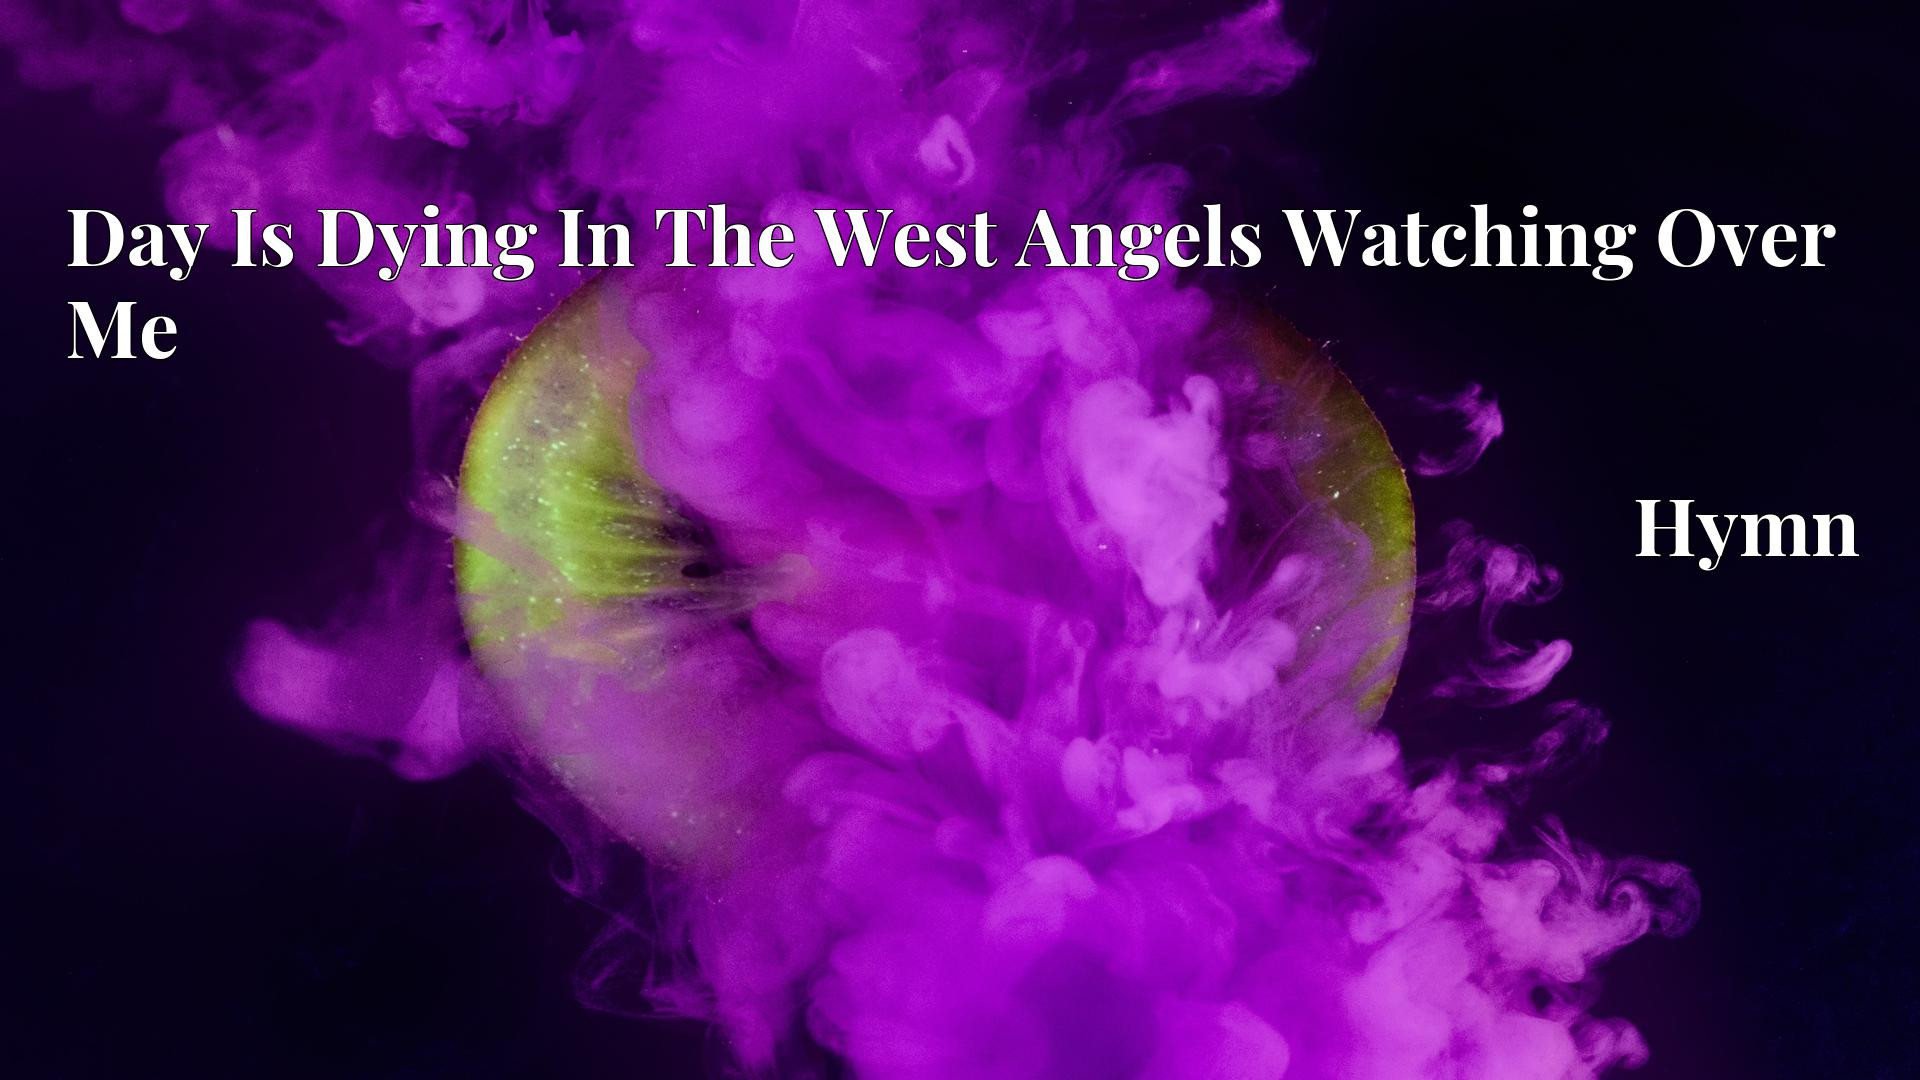 Day Is Dying In The West Angels Watching Over Me - Hymn